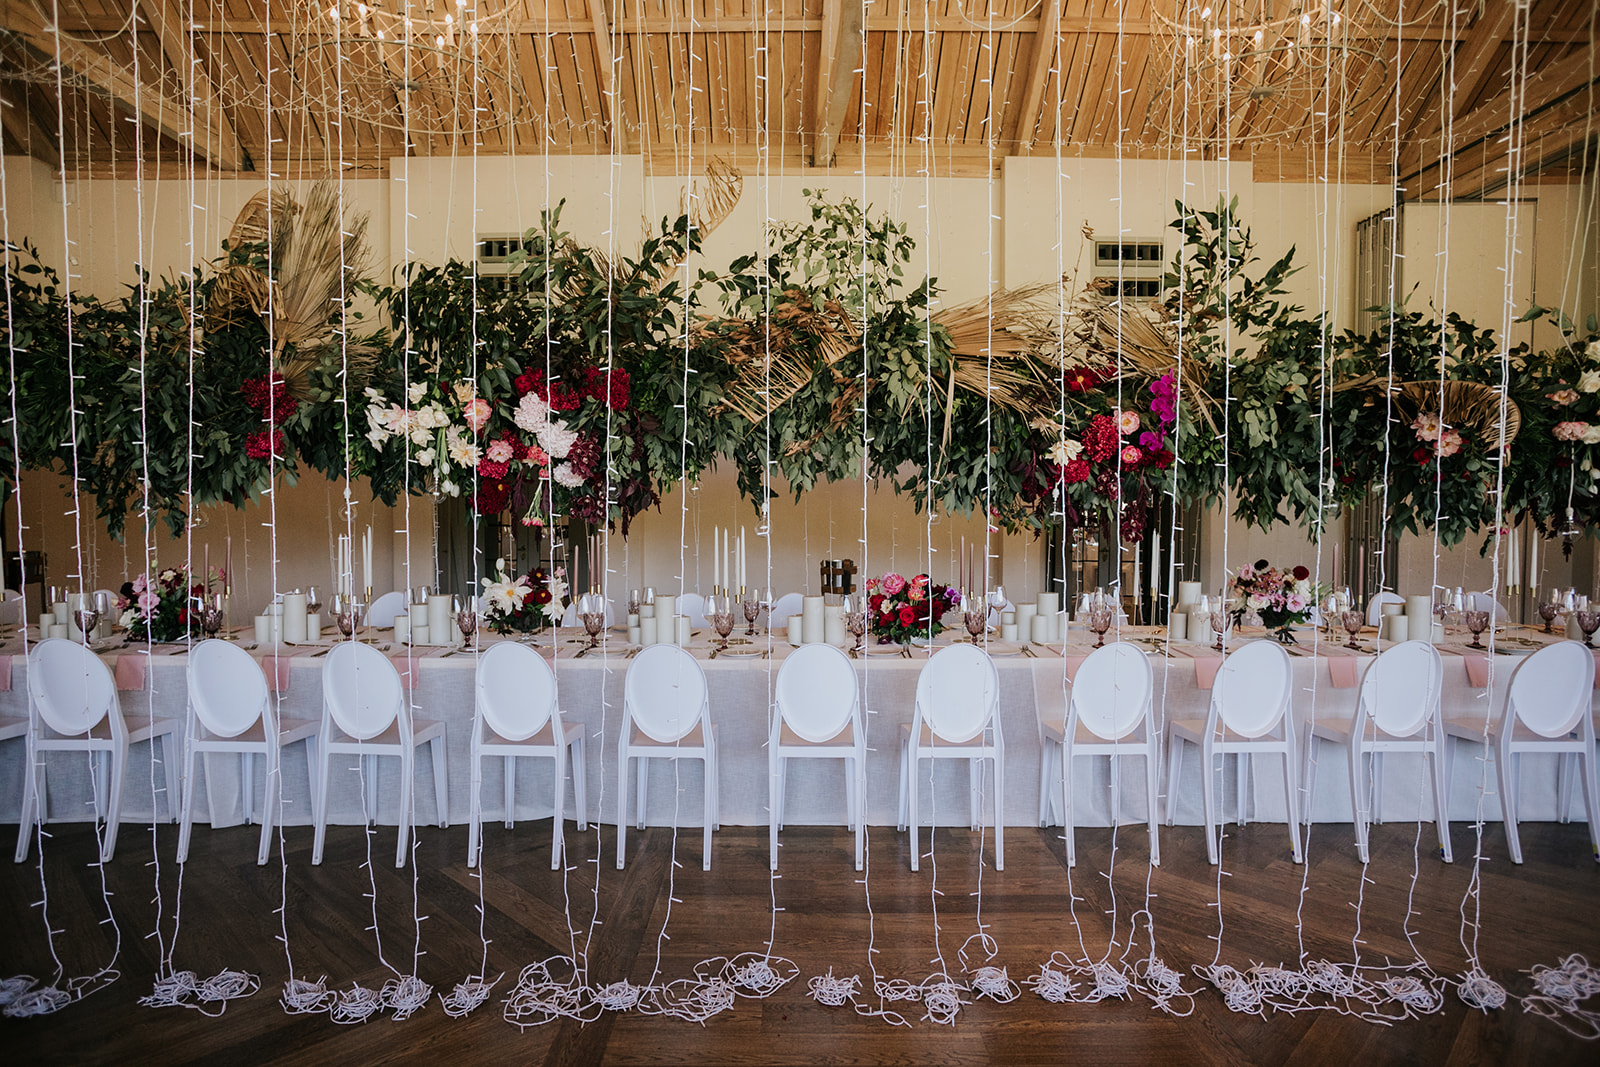 Boschendal flowers wedding.jpg